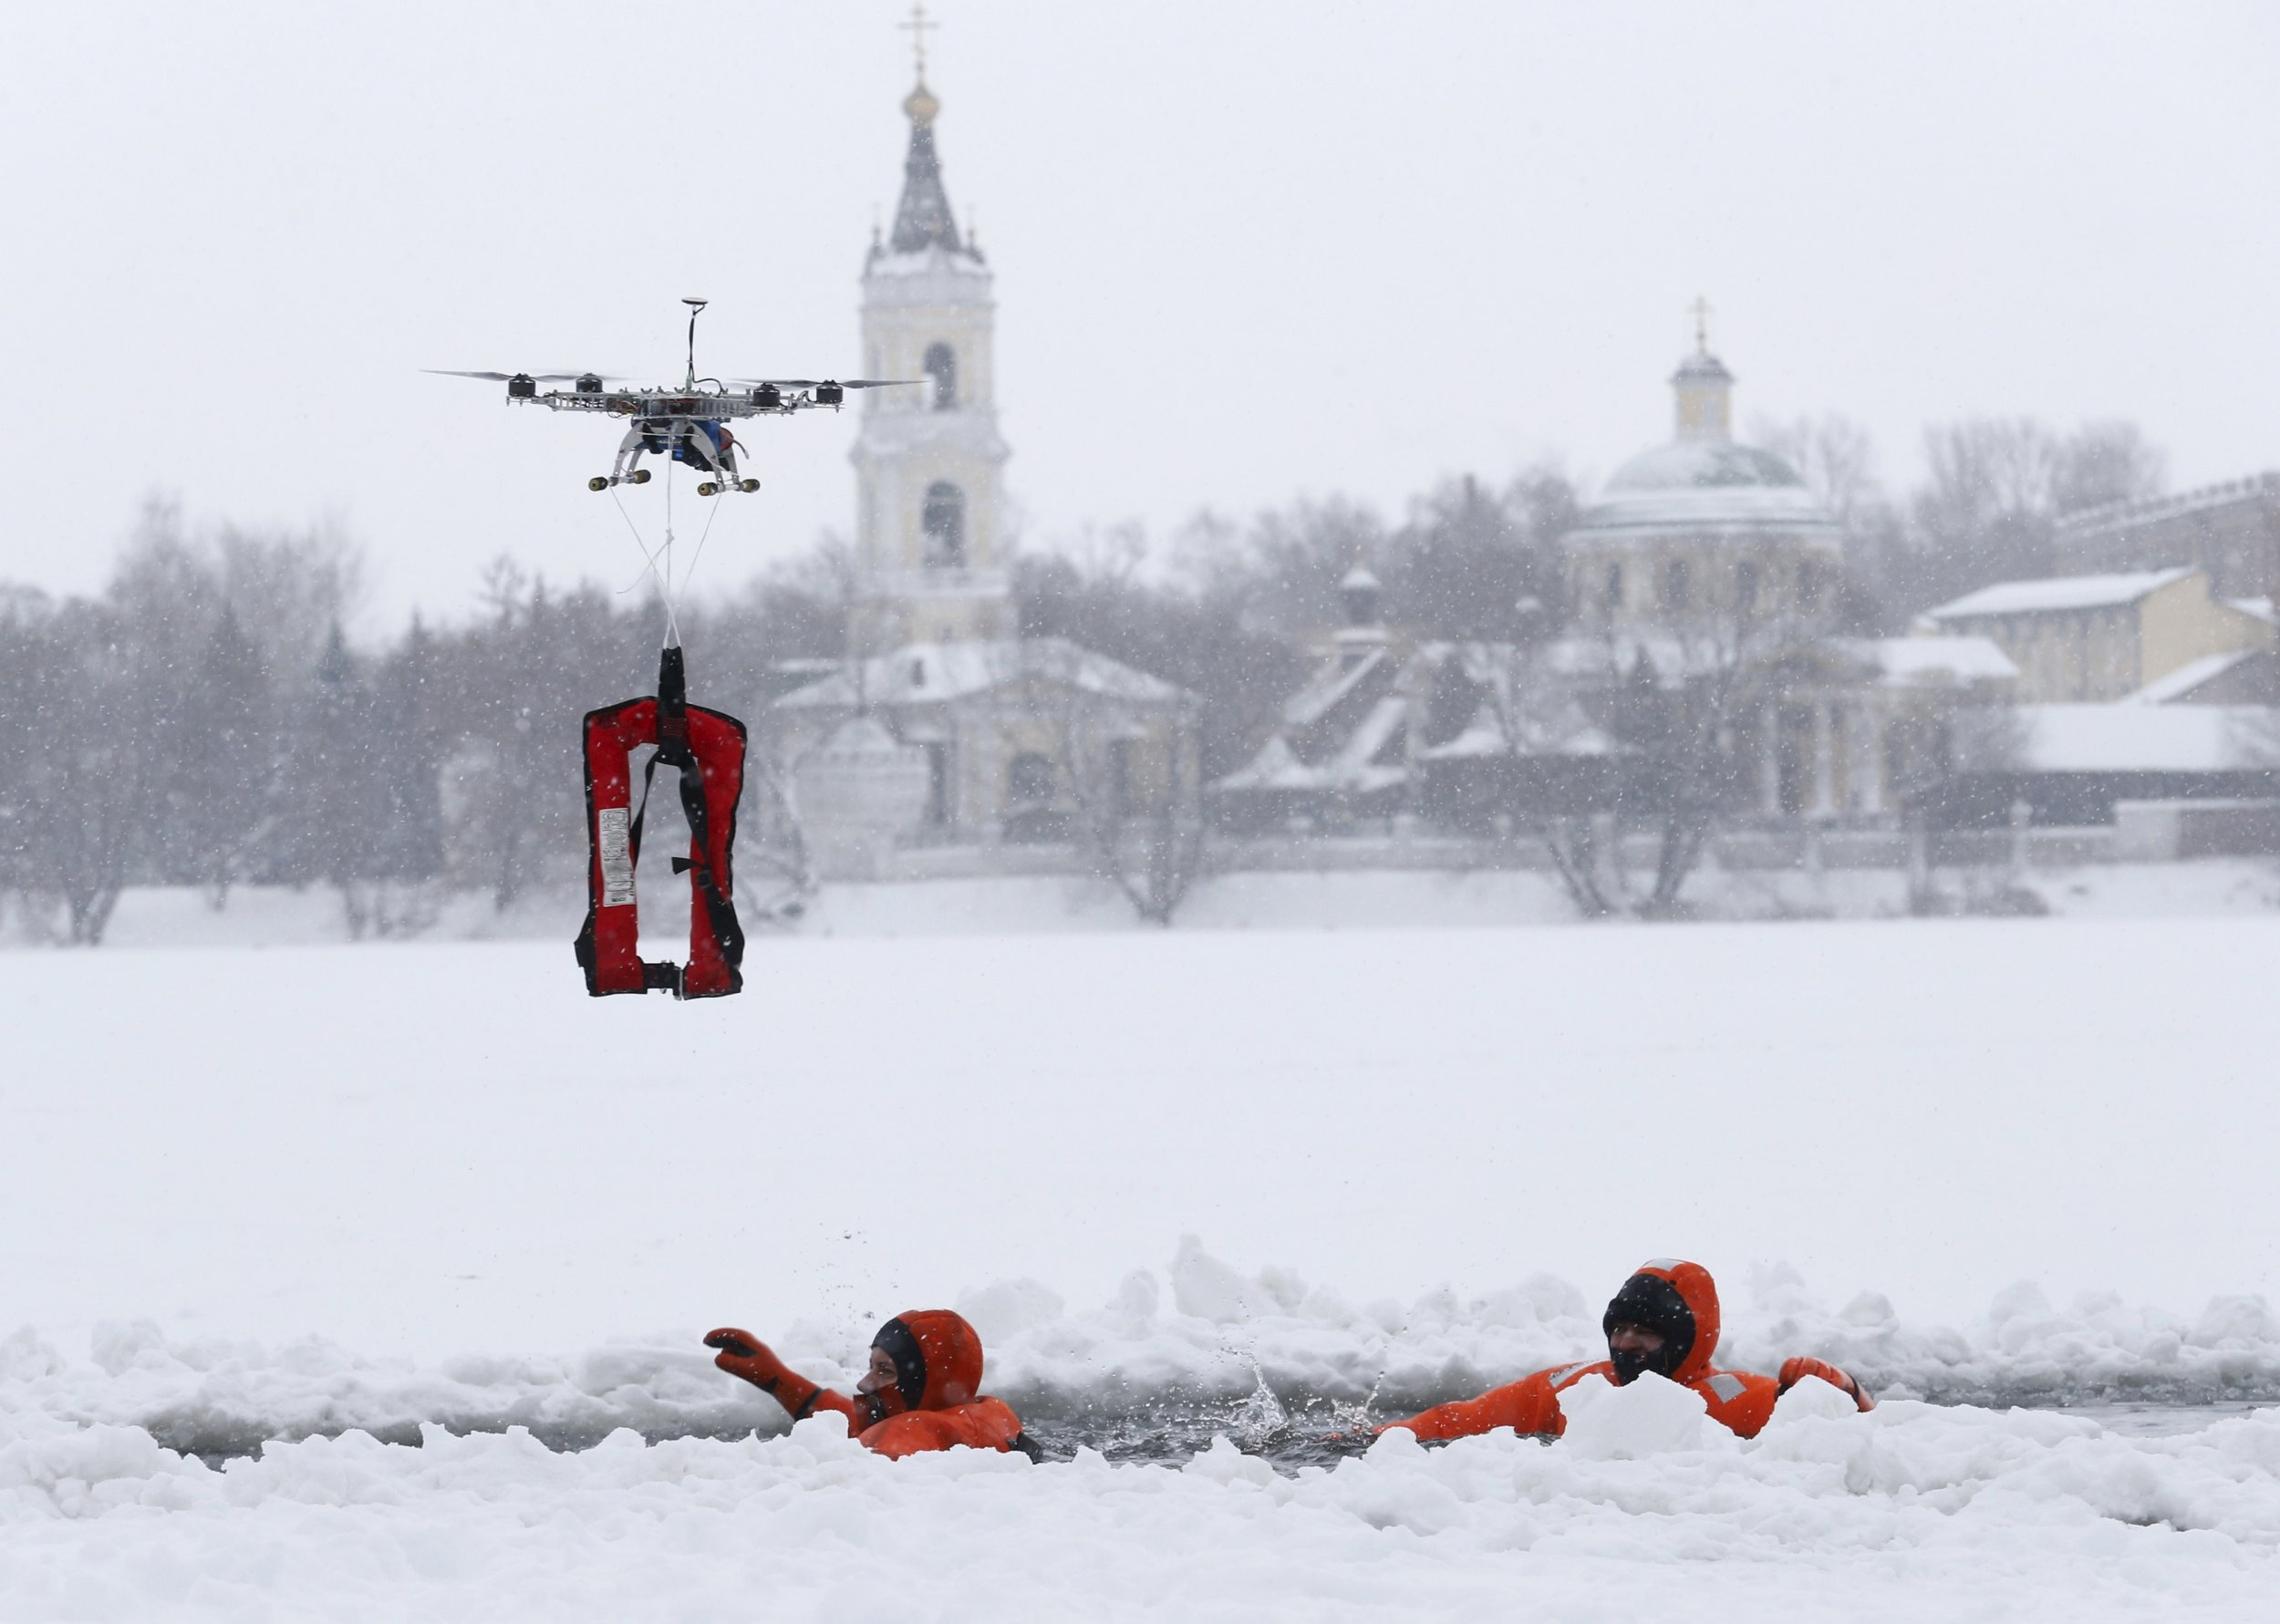 Firefighting Criminal Chasing Rescue Drones Coming To Europe